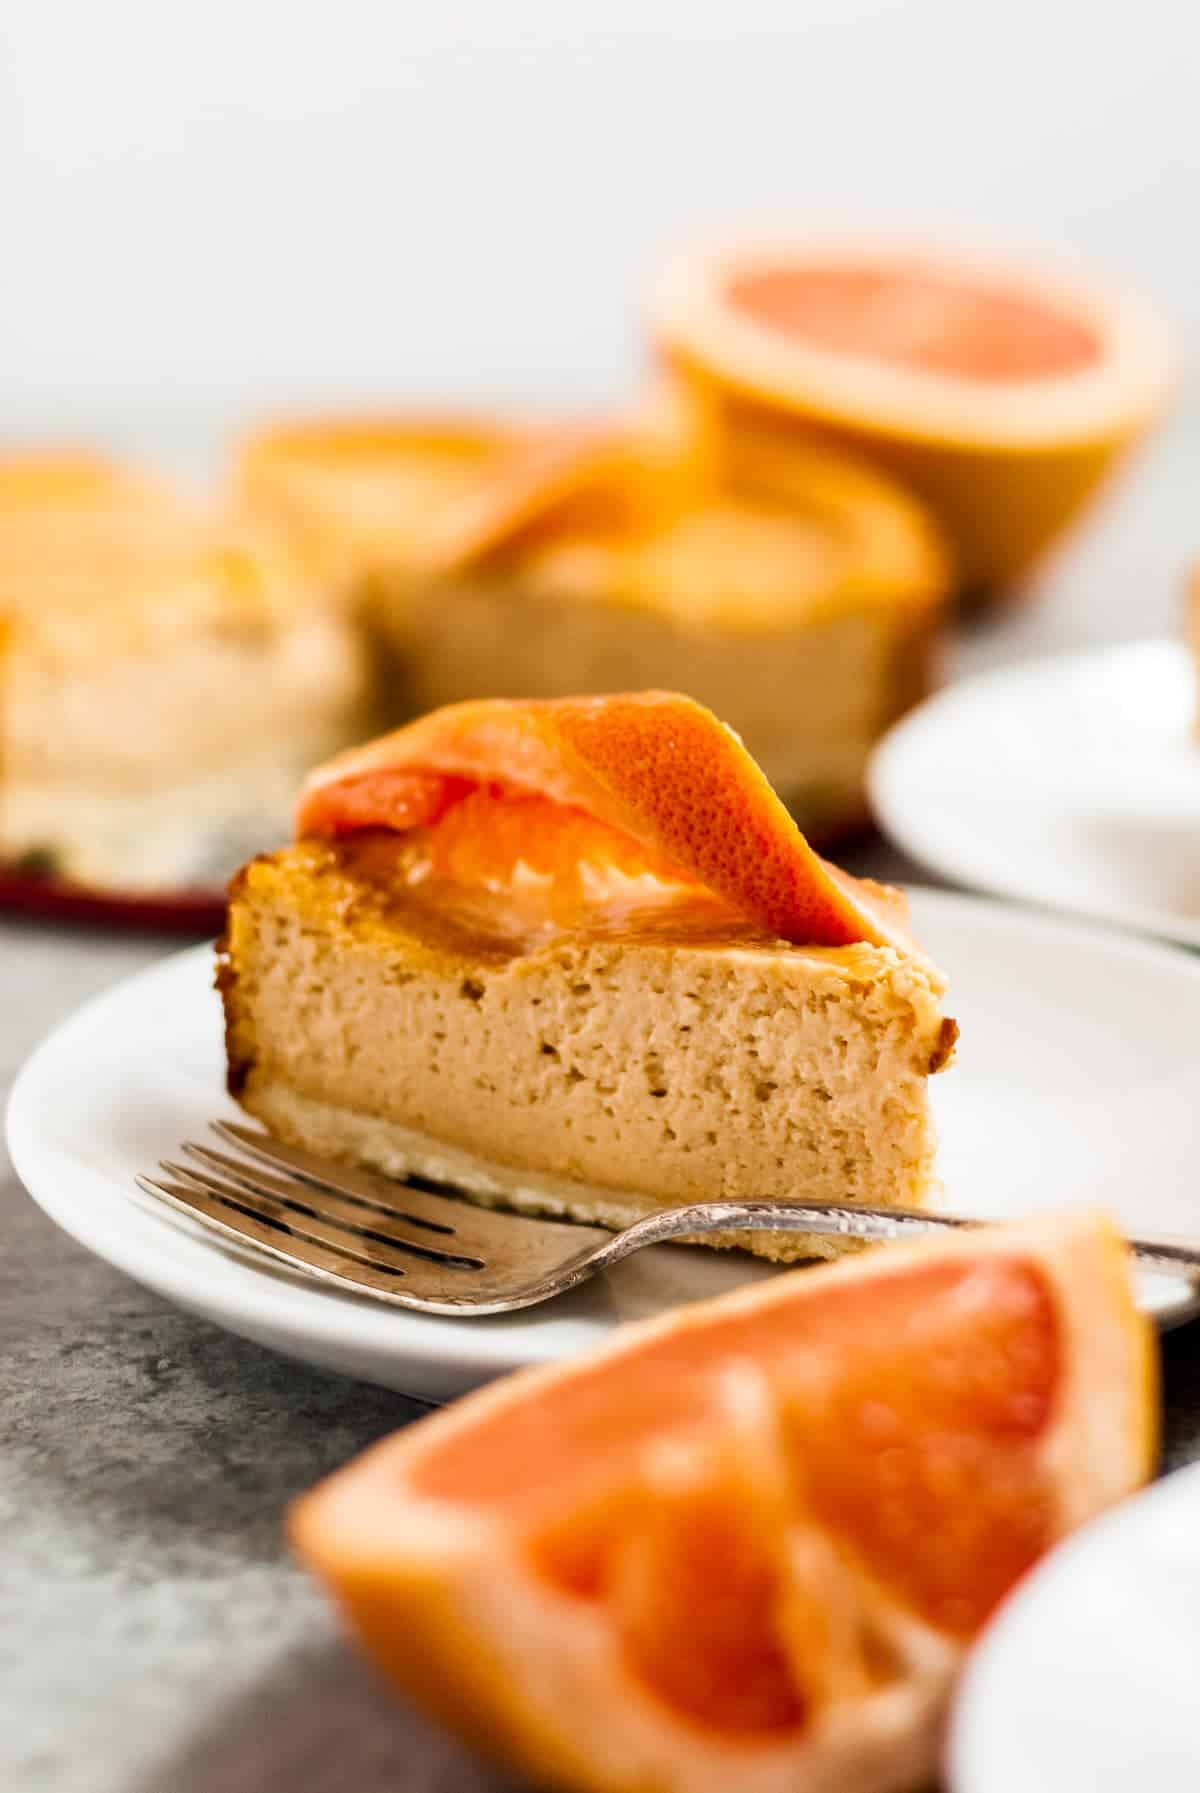 cheesecake on plate with grapefruit